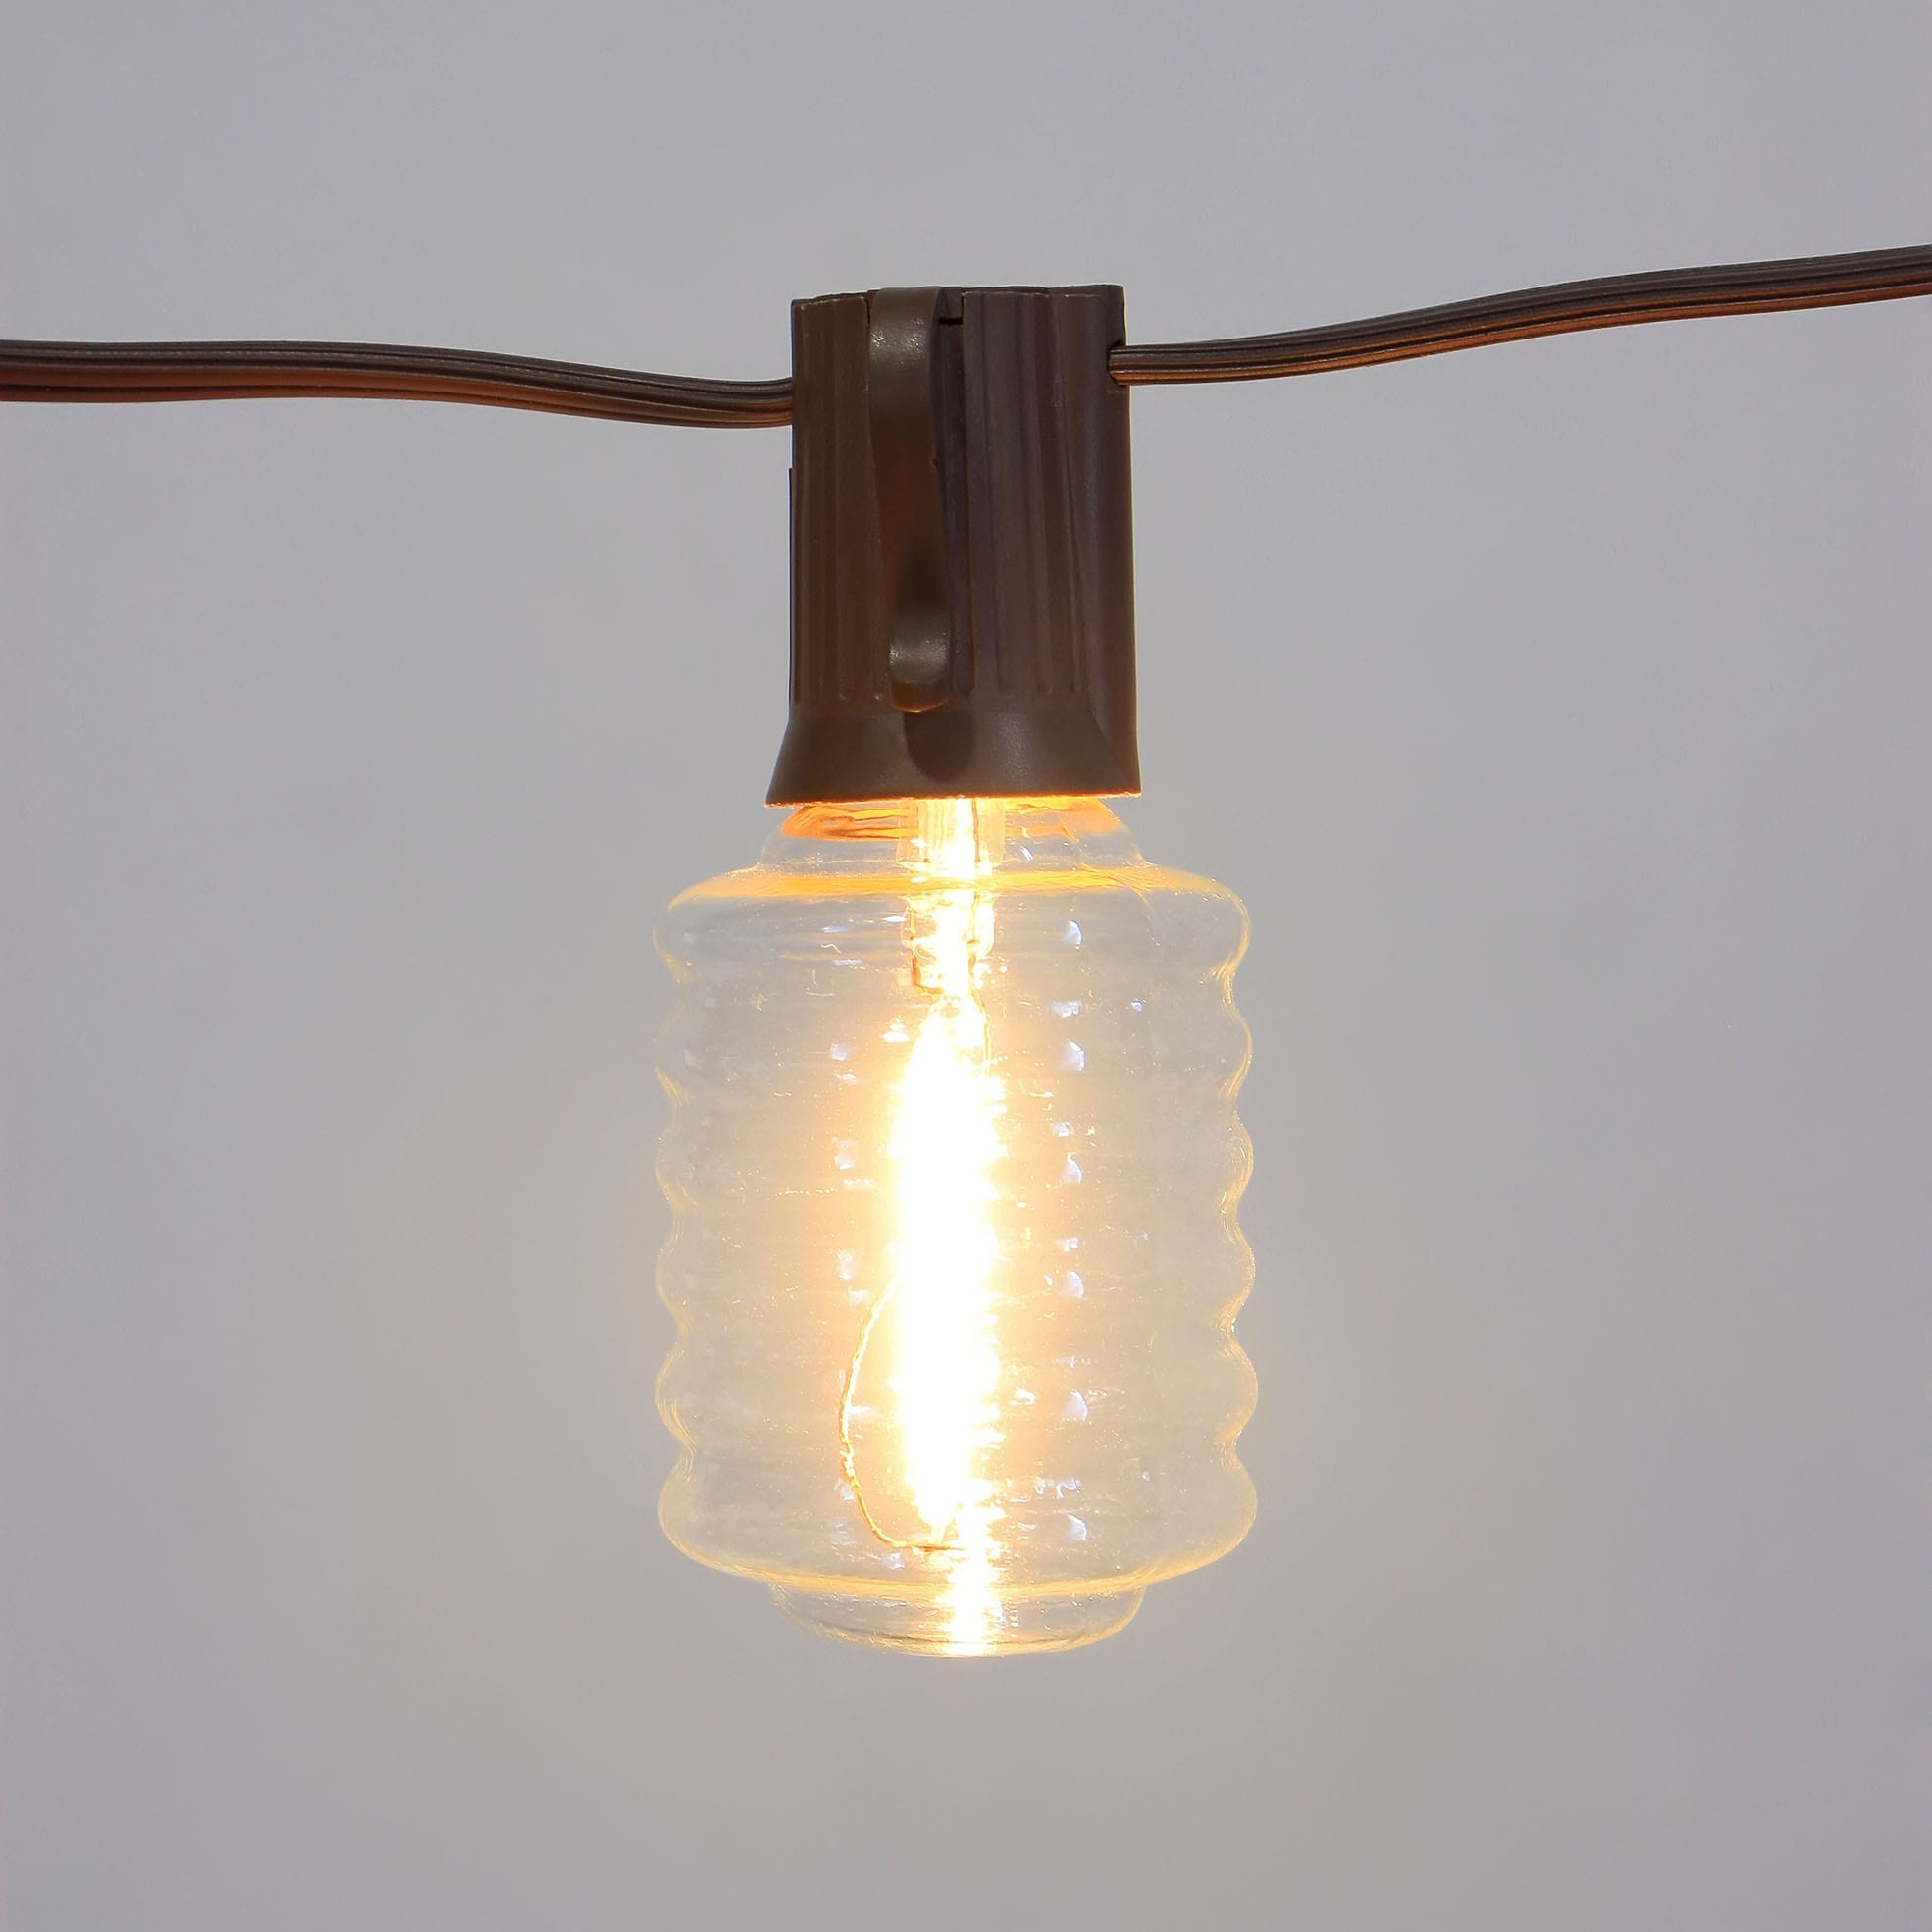 Incandescent String Light  MYHH41132 Featured Image